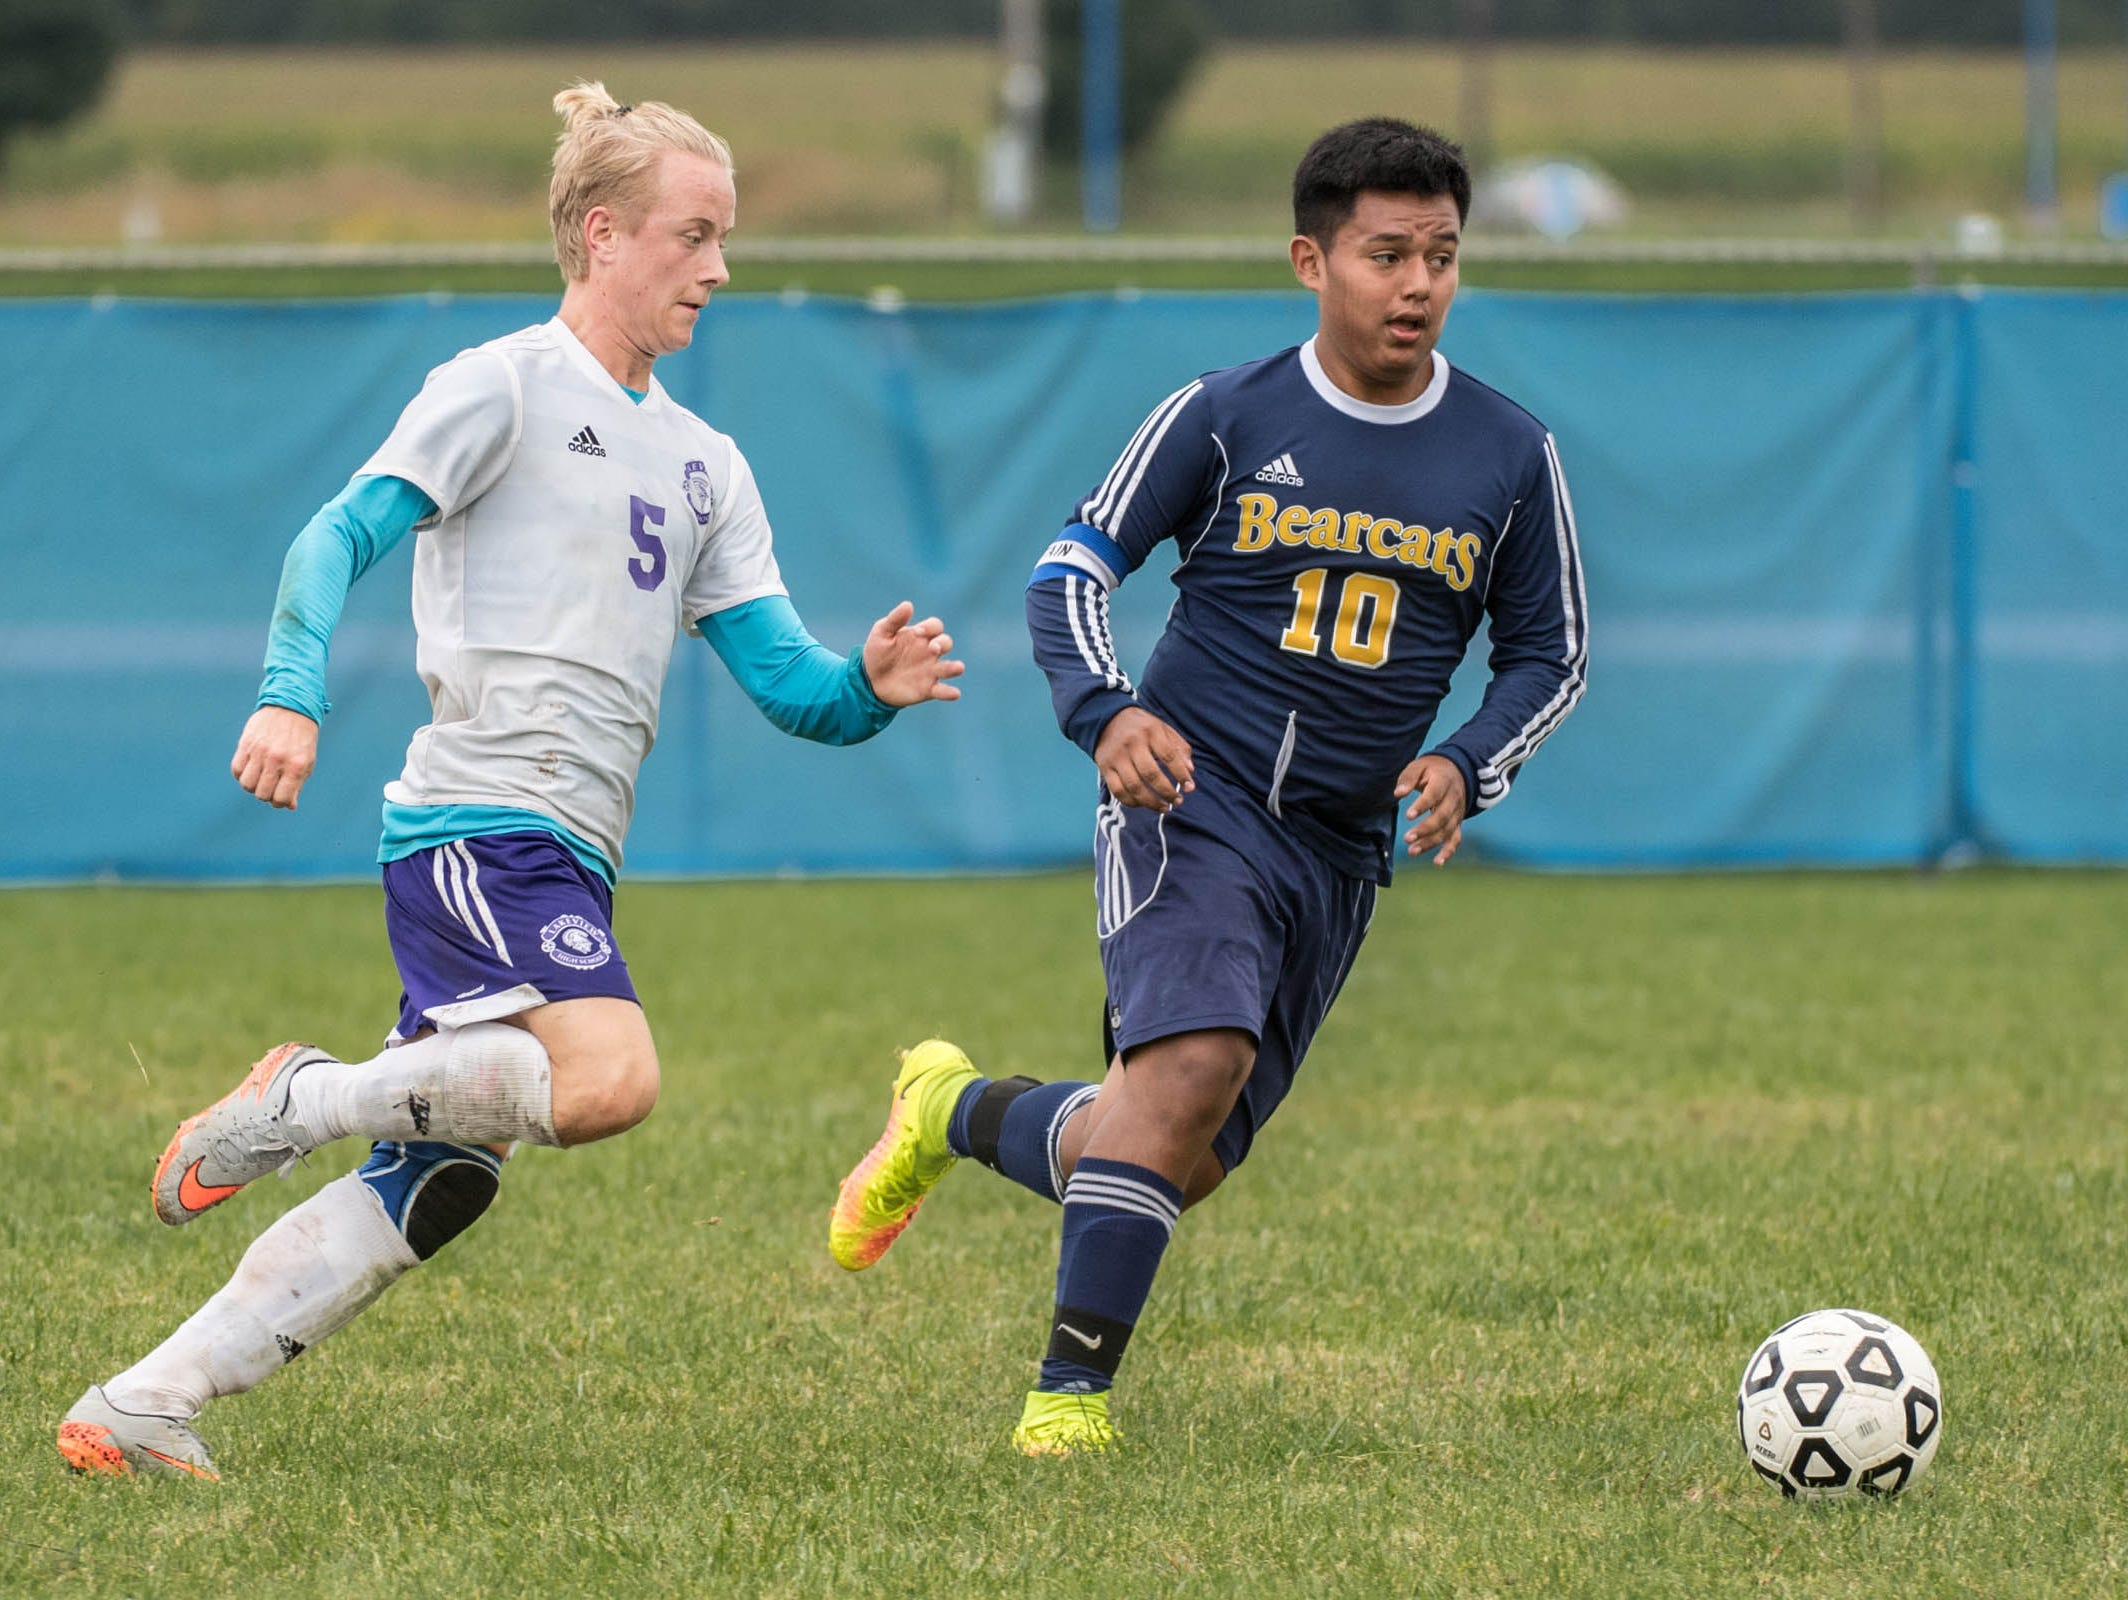 Lakeview's Theodor Pleiff (5) and Battle Creek Central's Jesus Bautista (10) go for the ball during the All City Soccer Championship on Saturday.